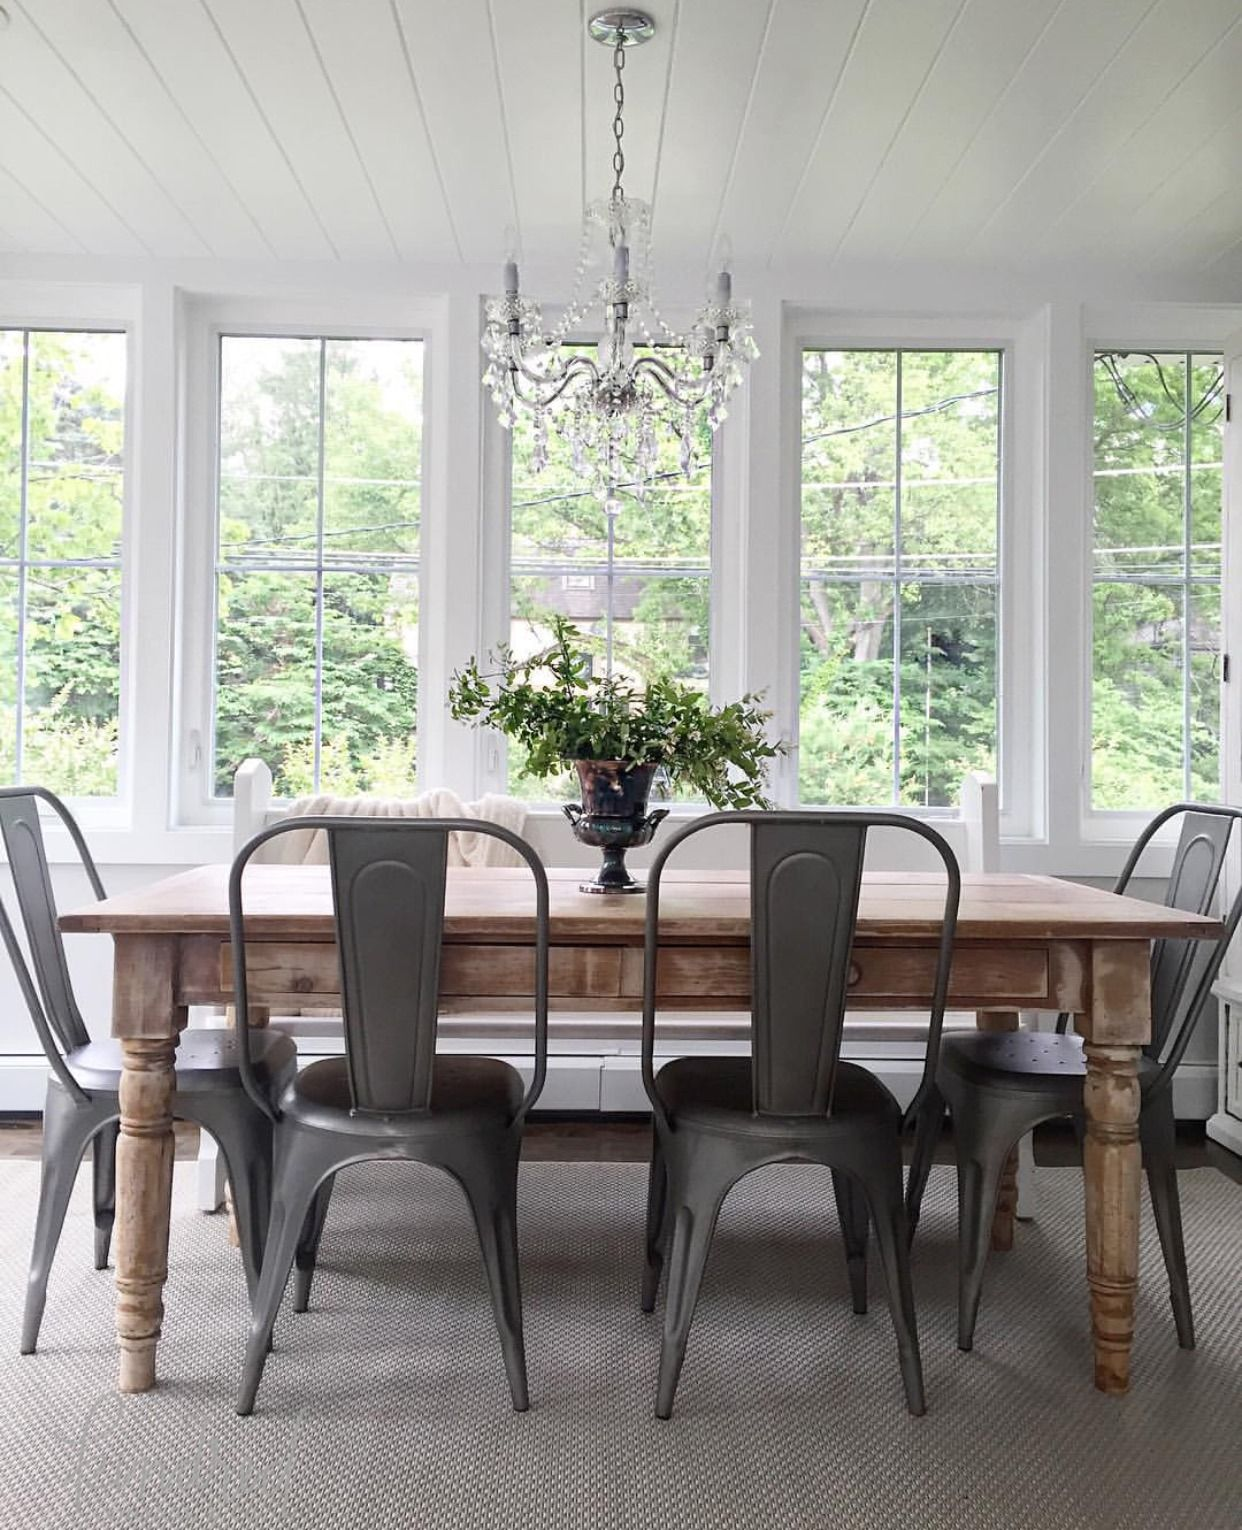 Farmhouse Table With These Metal Chair And A Bench On The Other